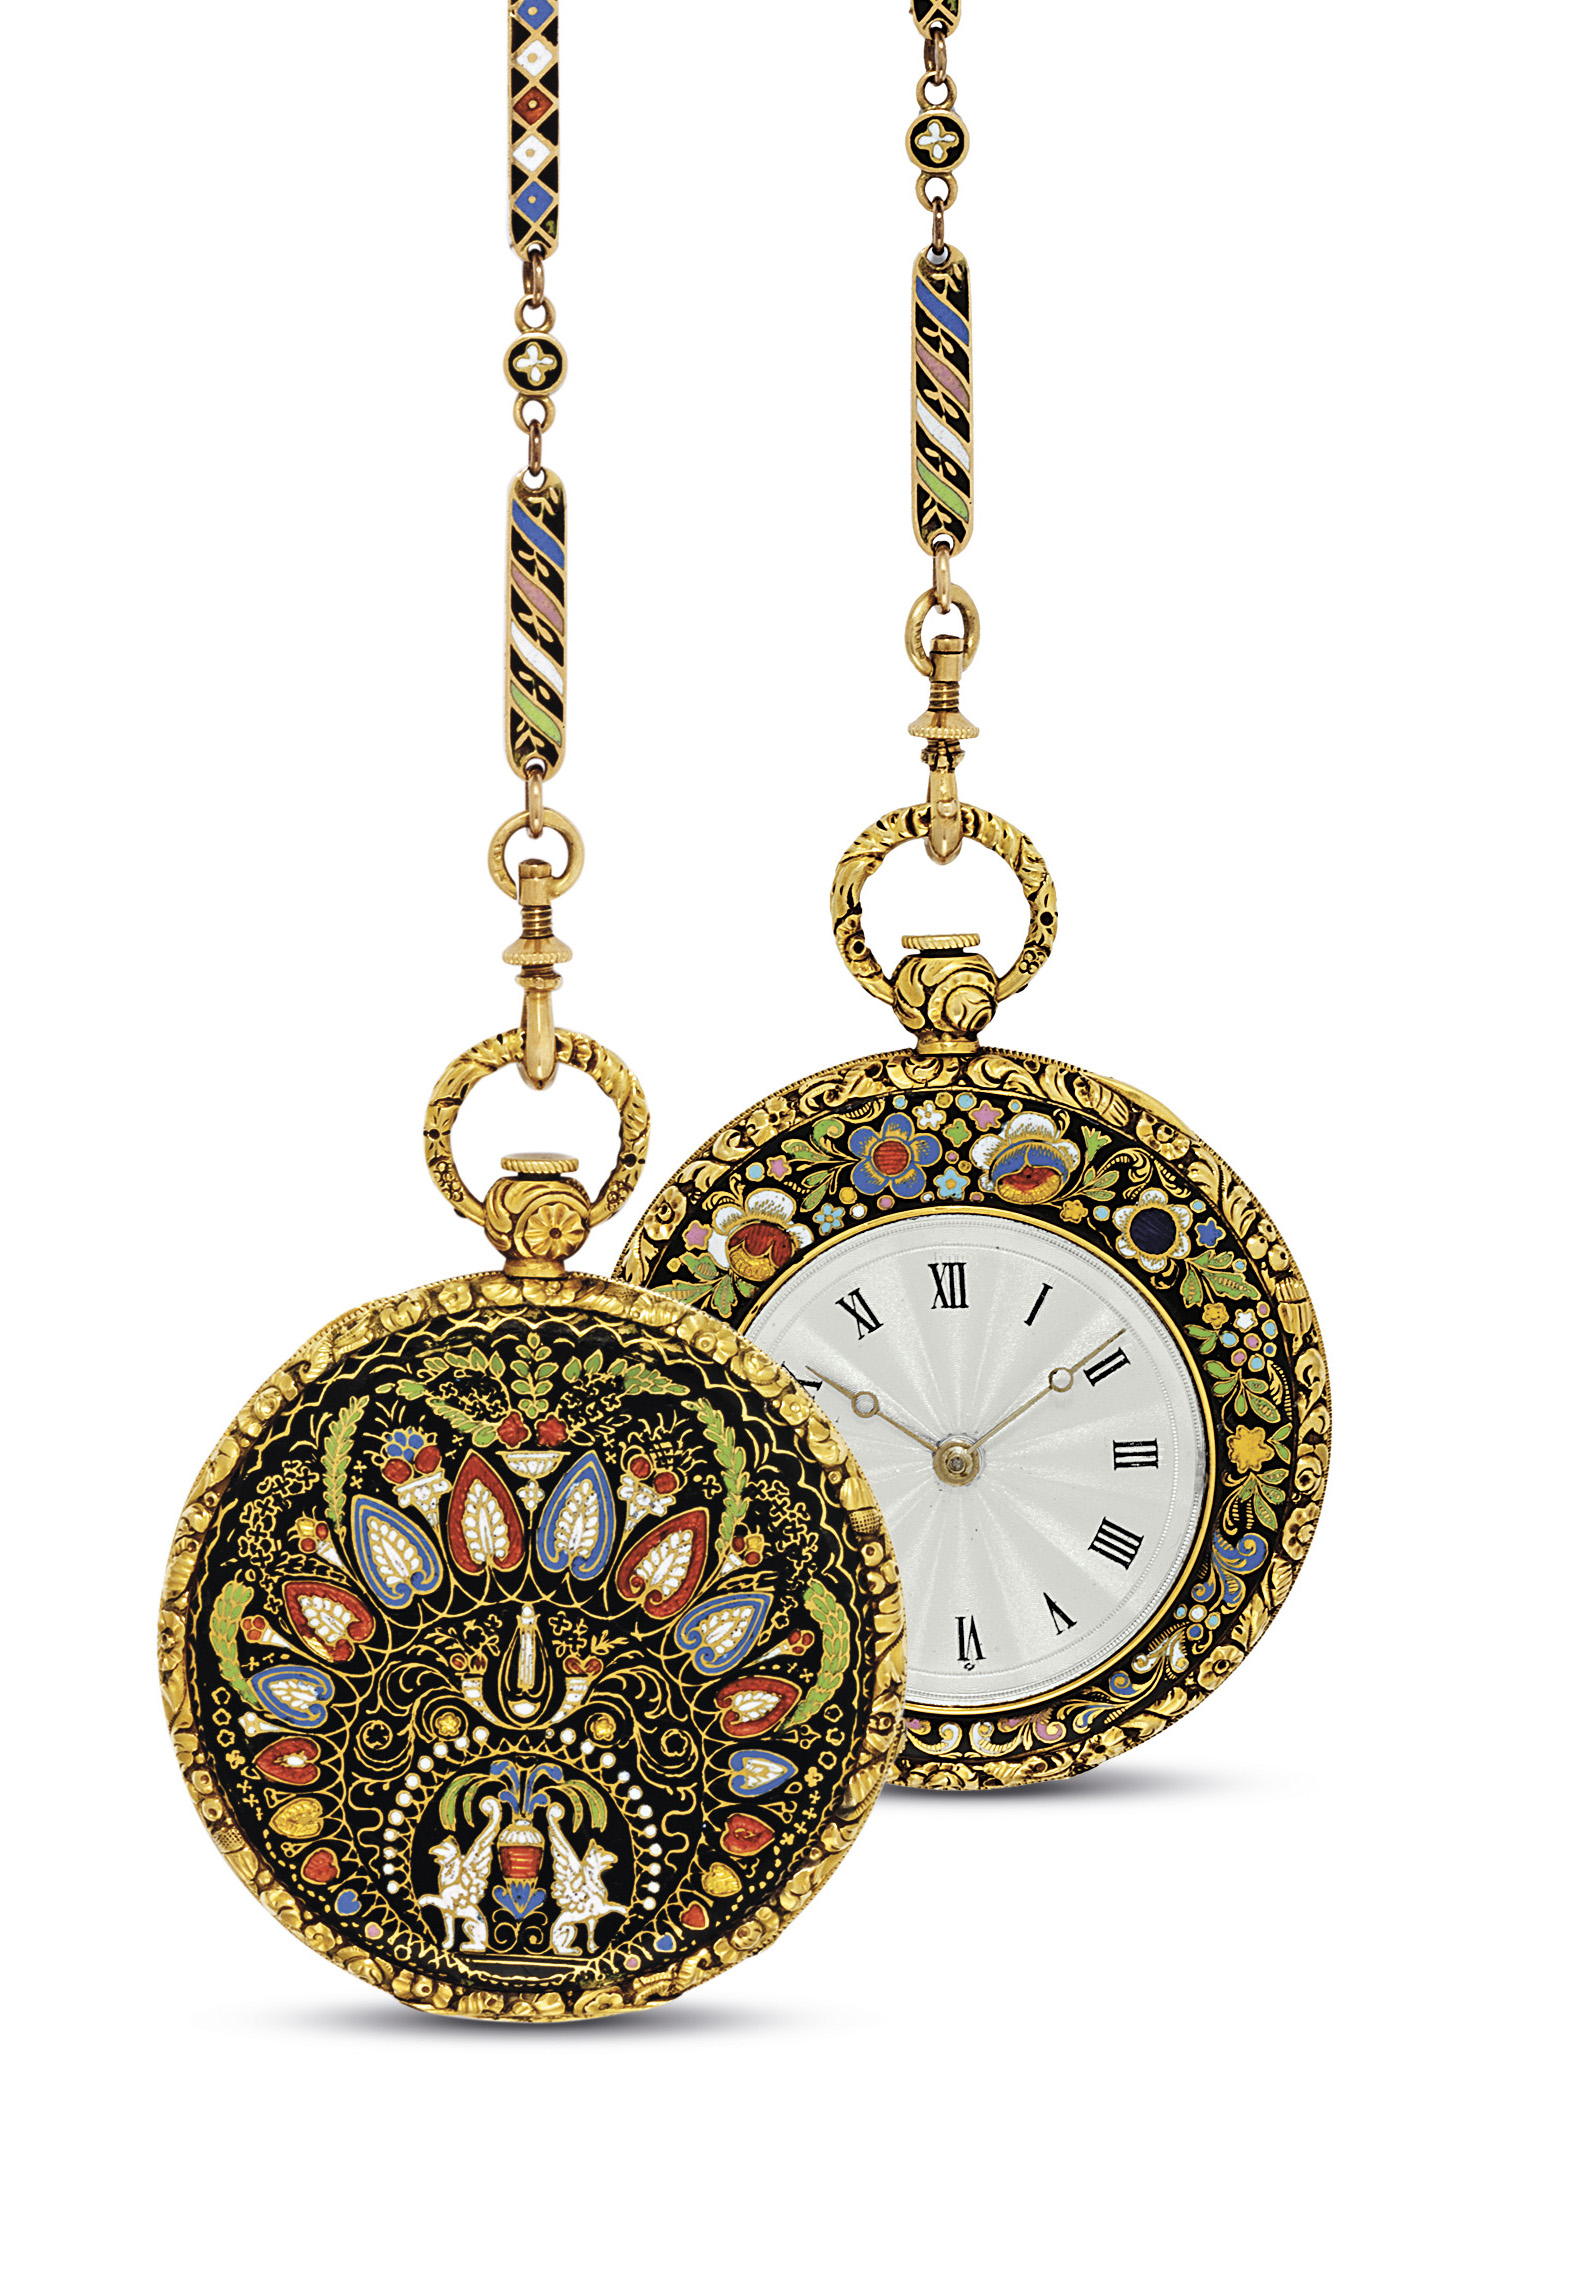 FRENCH. A GOLD AND ENAMEL OPENFACE CYLINDER WATCH WITH MATCHING CHAIN